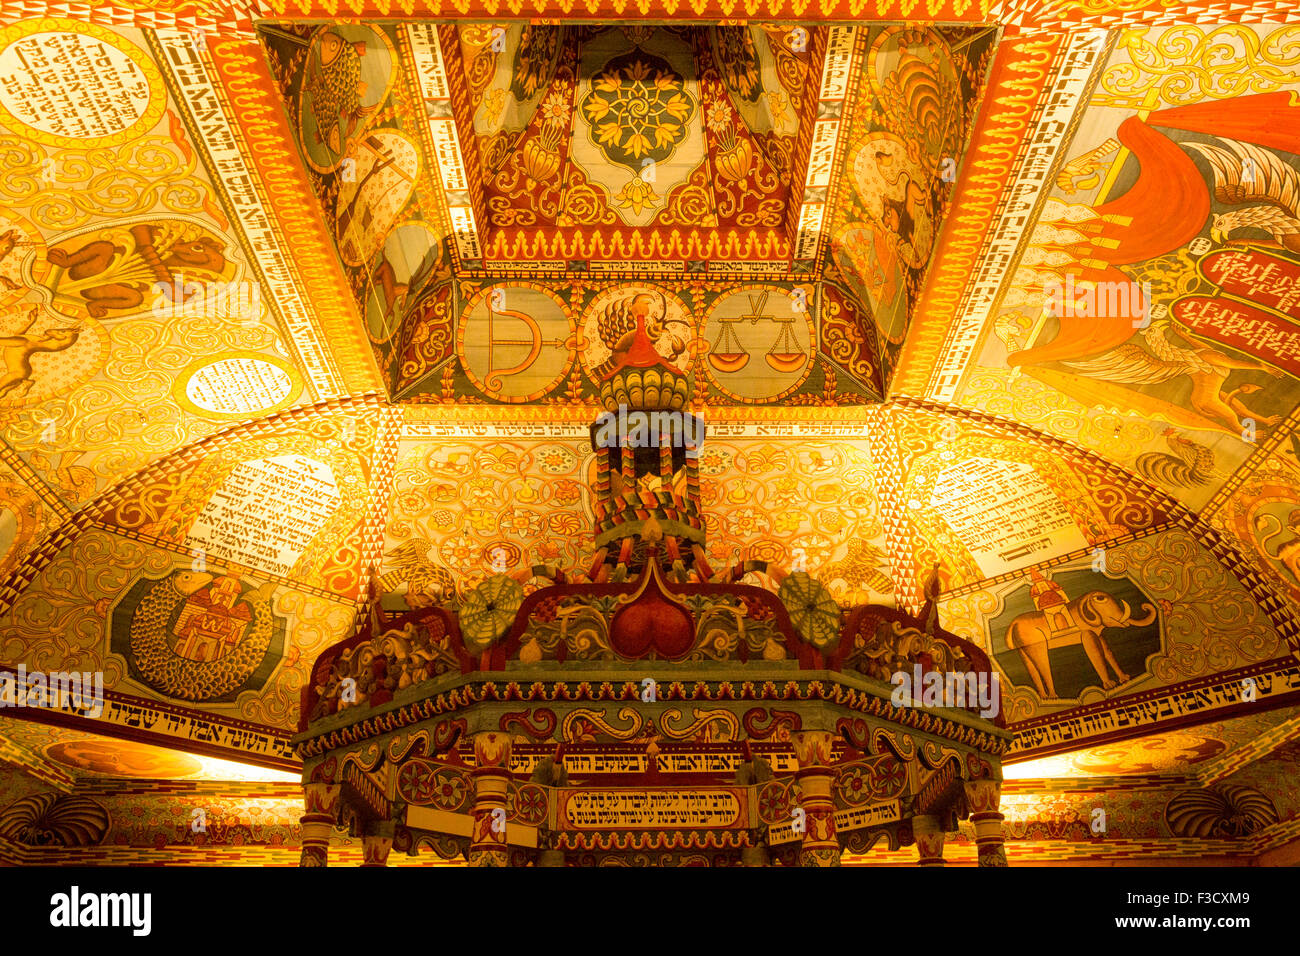 The painted ceiling of a typical wooden Jewish synagogue In Warsaw Poland - Stock Image